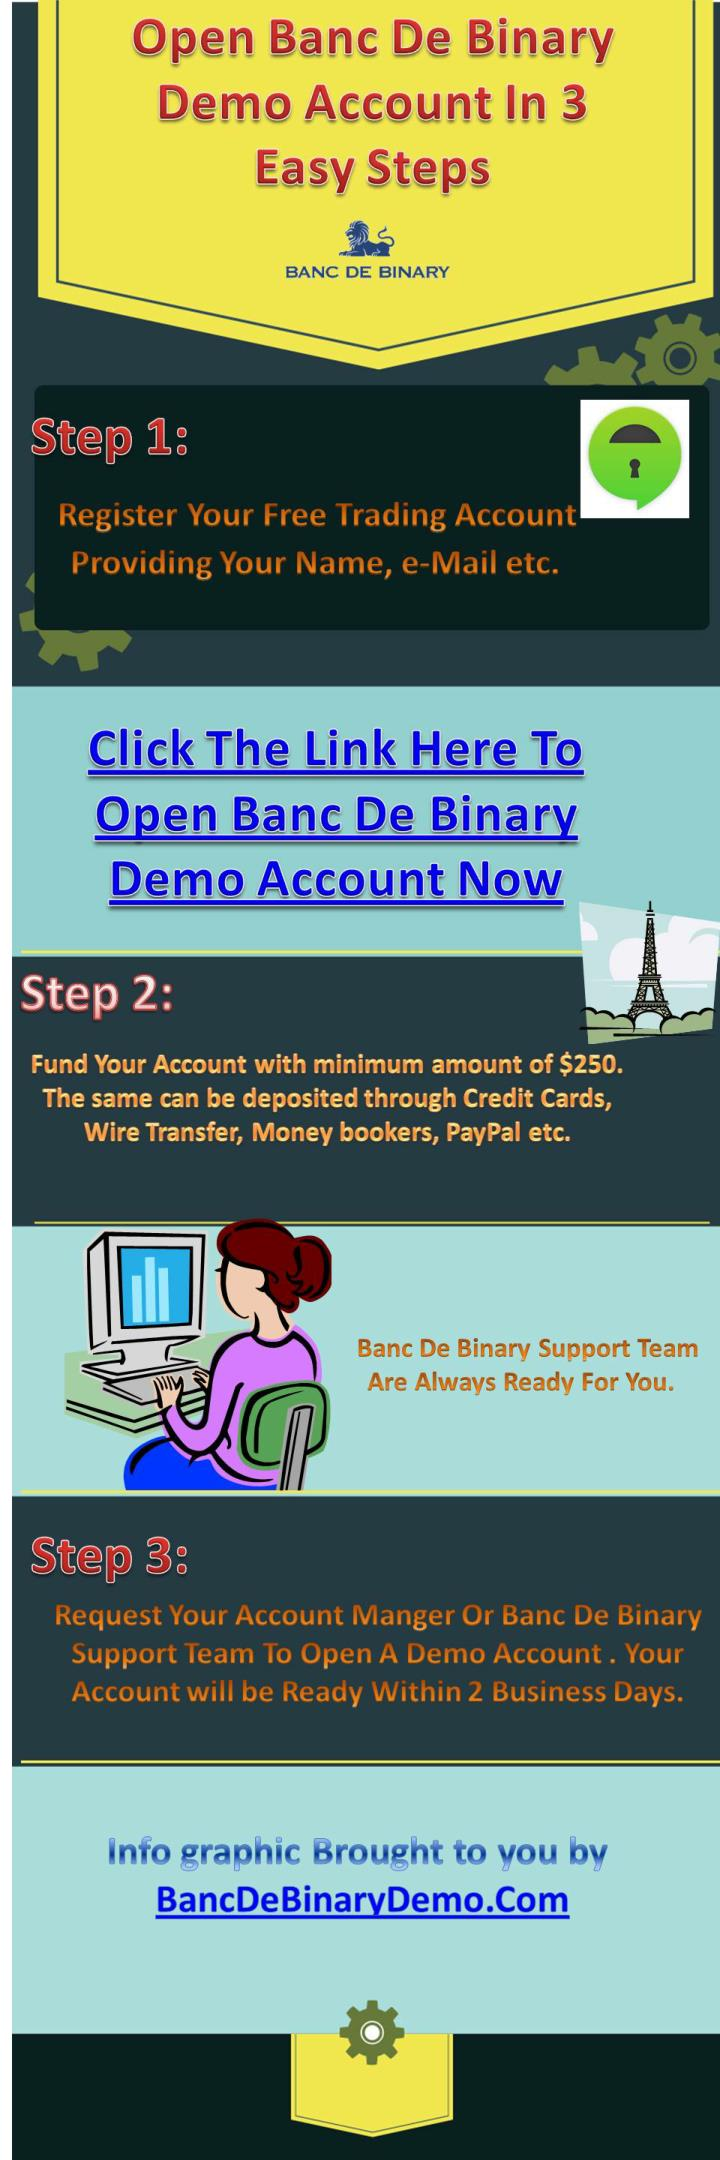 Banc de binary demo account the key to your success